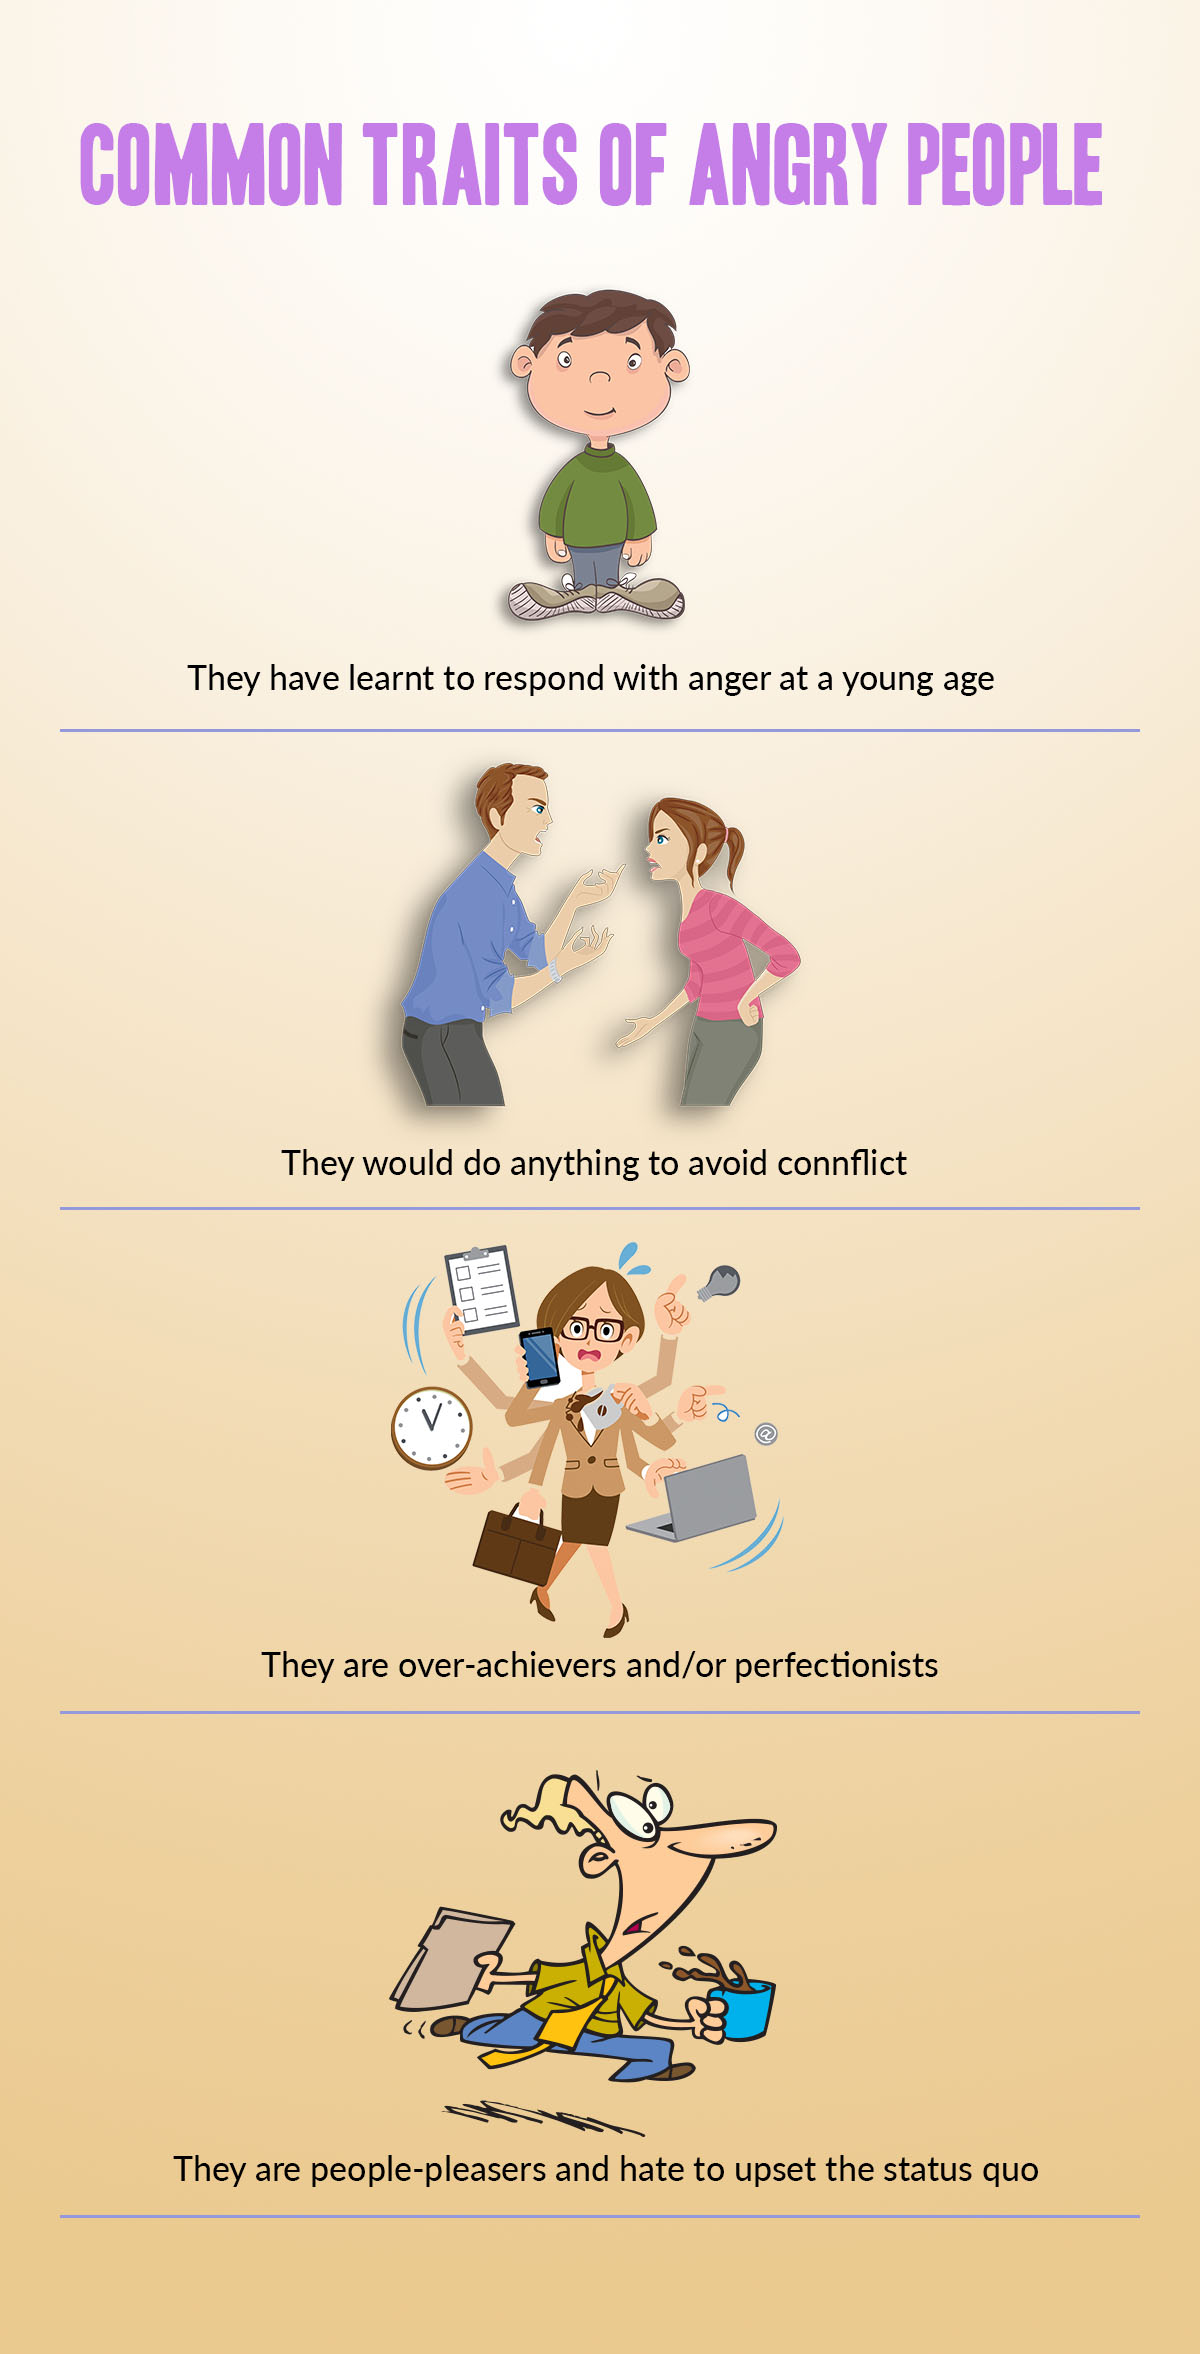 Things that exacerbate the problem of anger